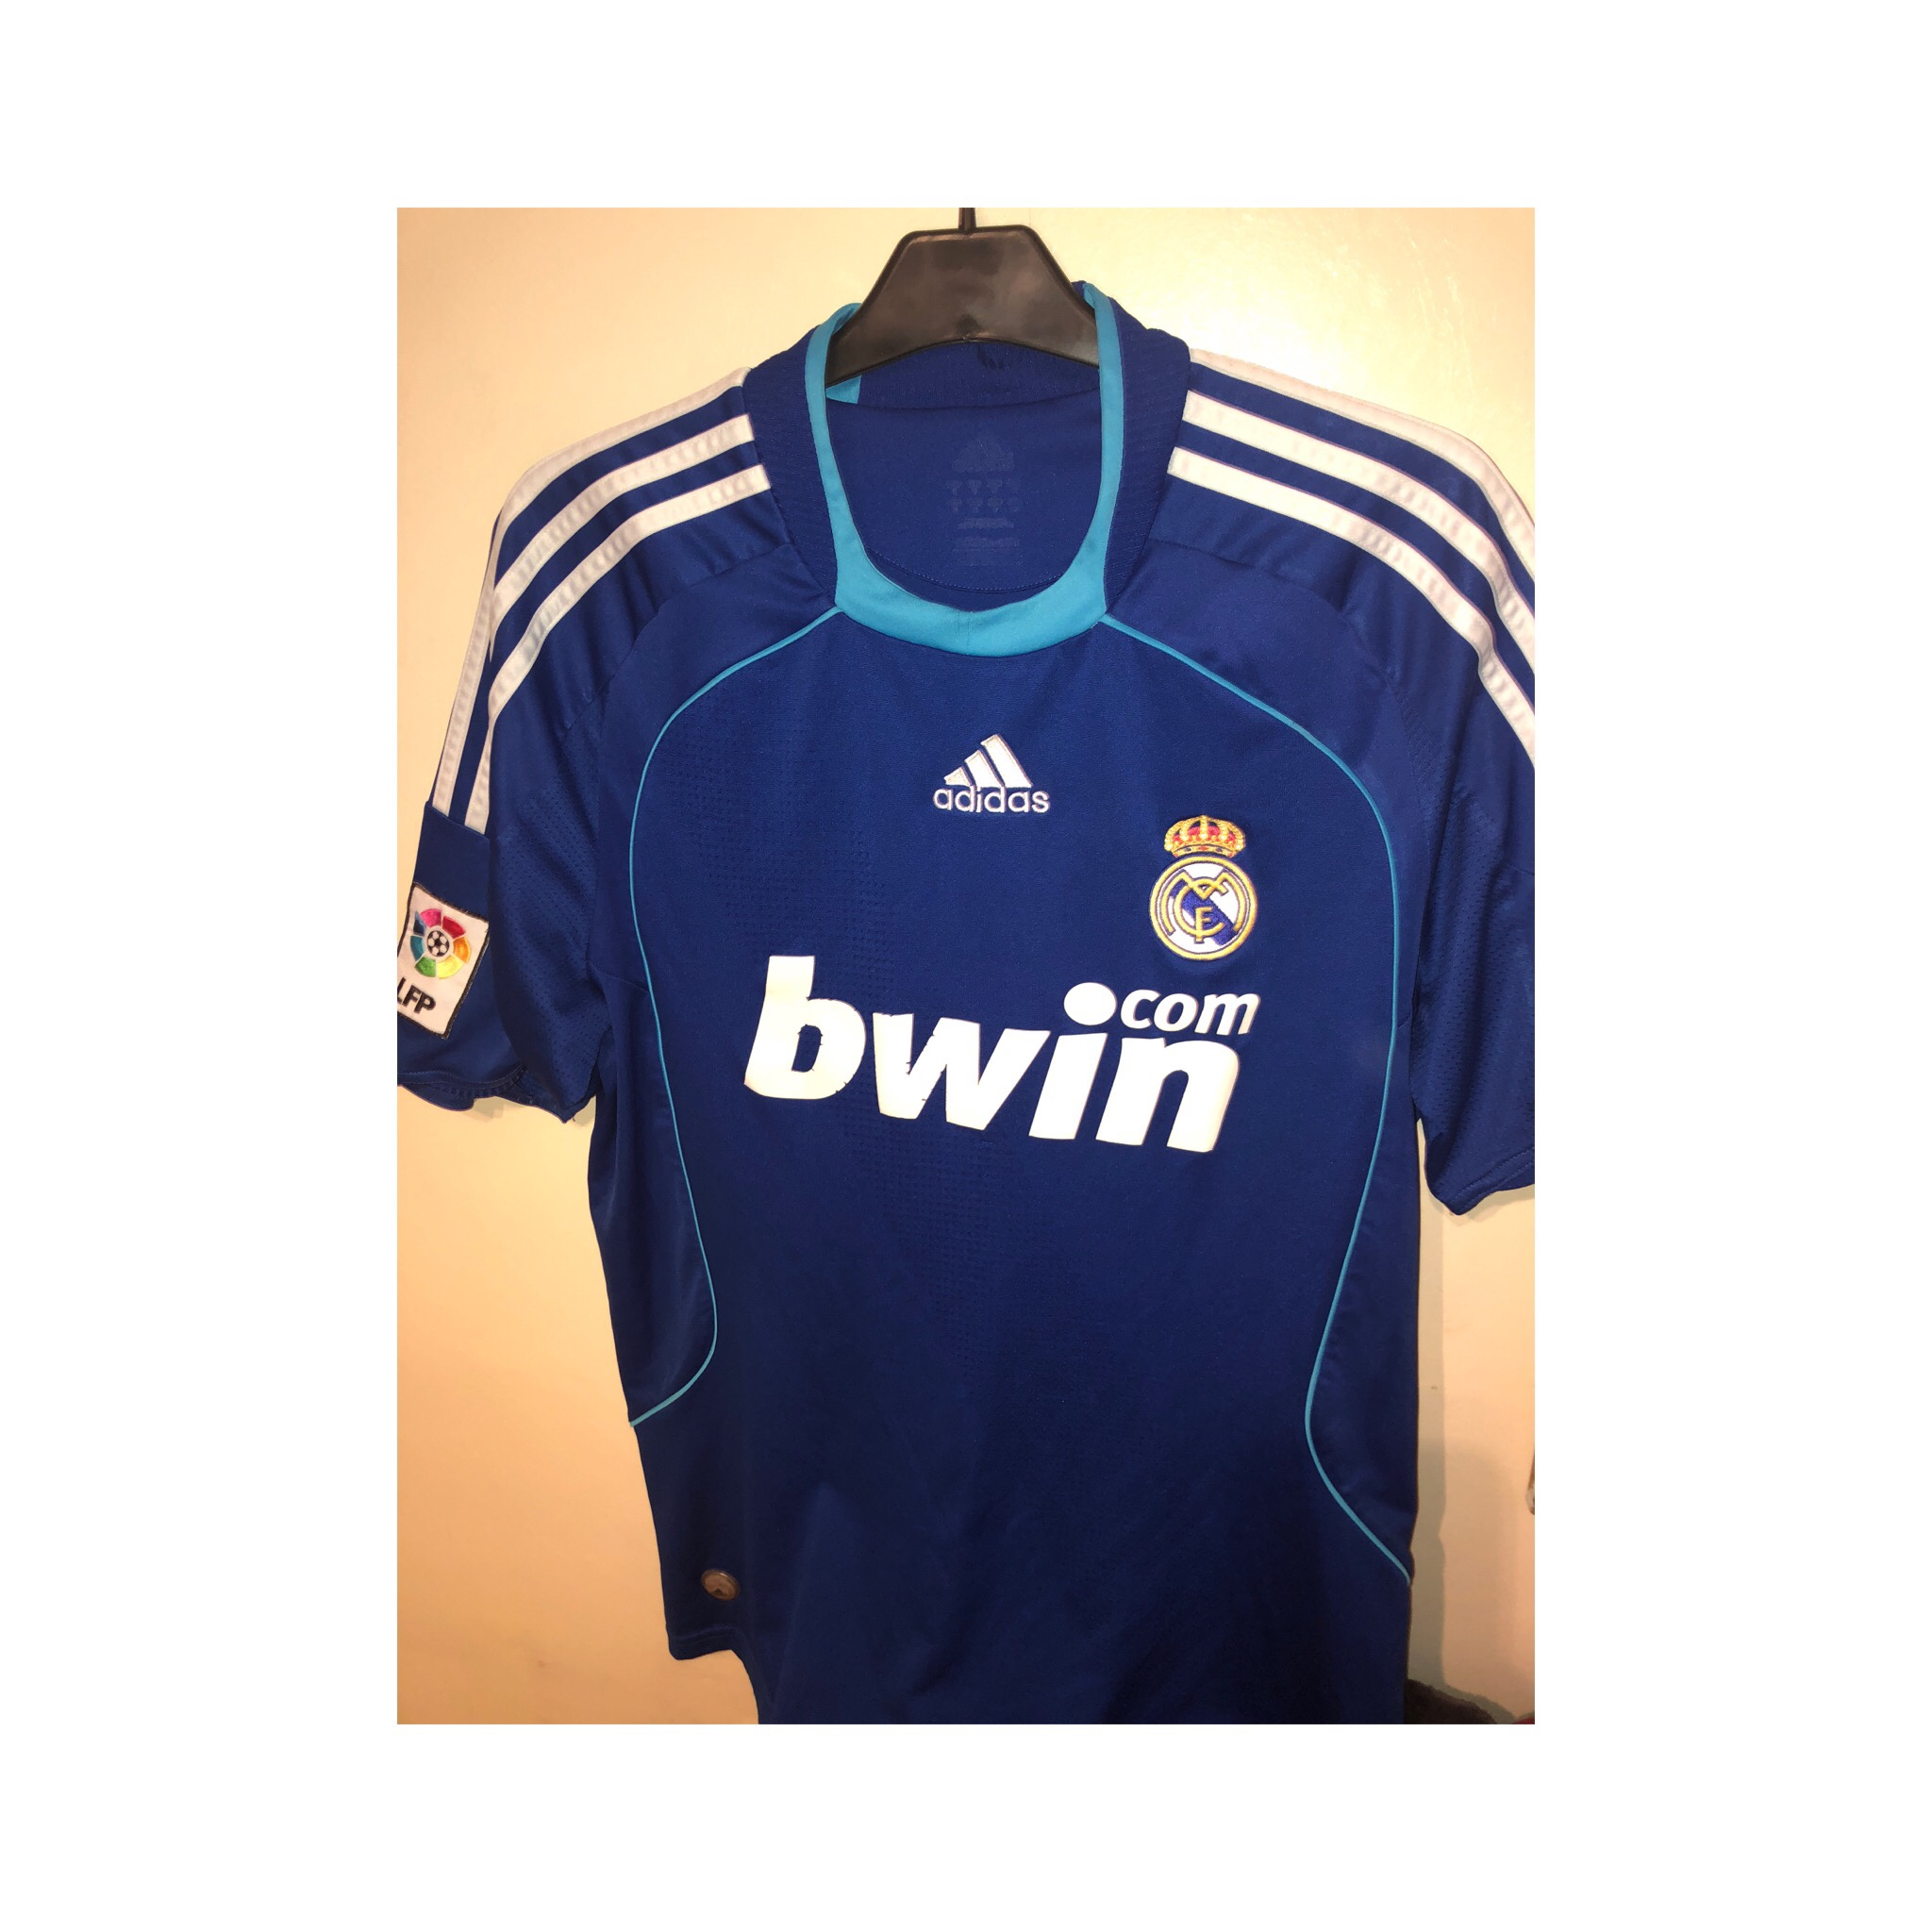 cheap for discount 8f2a9 3f910 Classic Real Madrid away kit. Condition is good with... - Depop